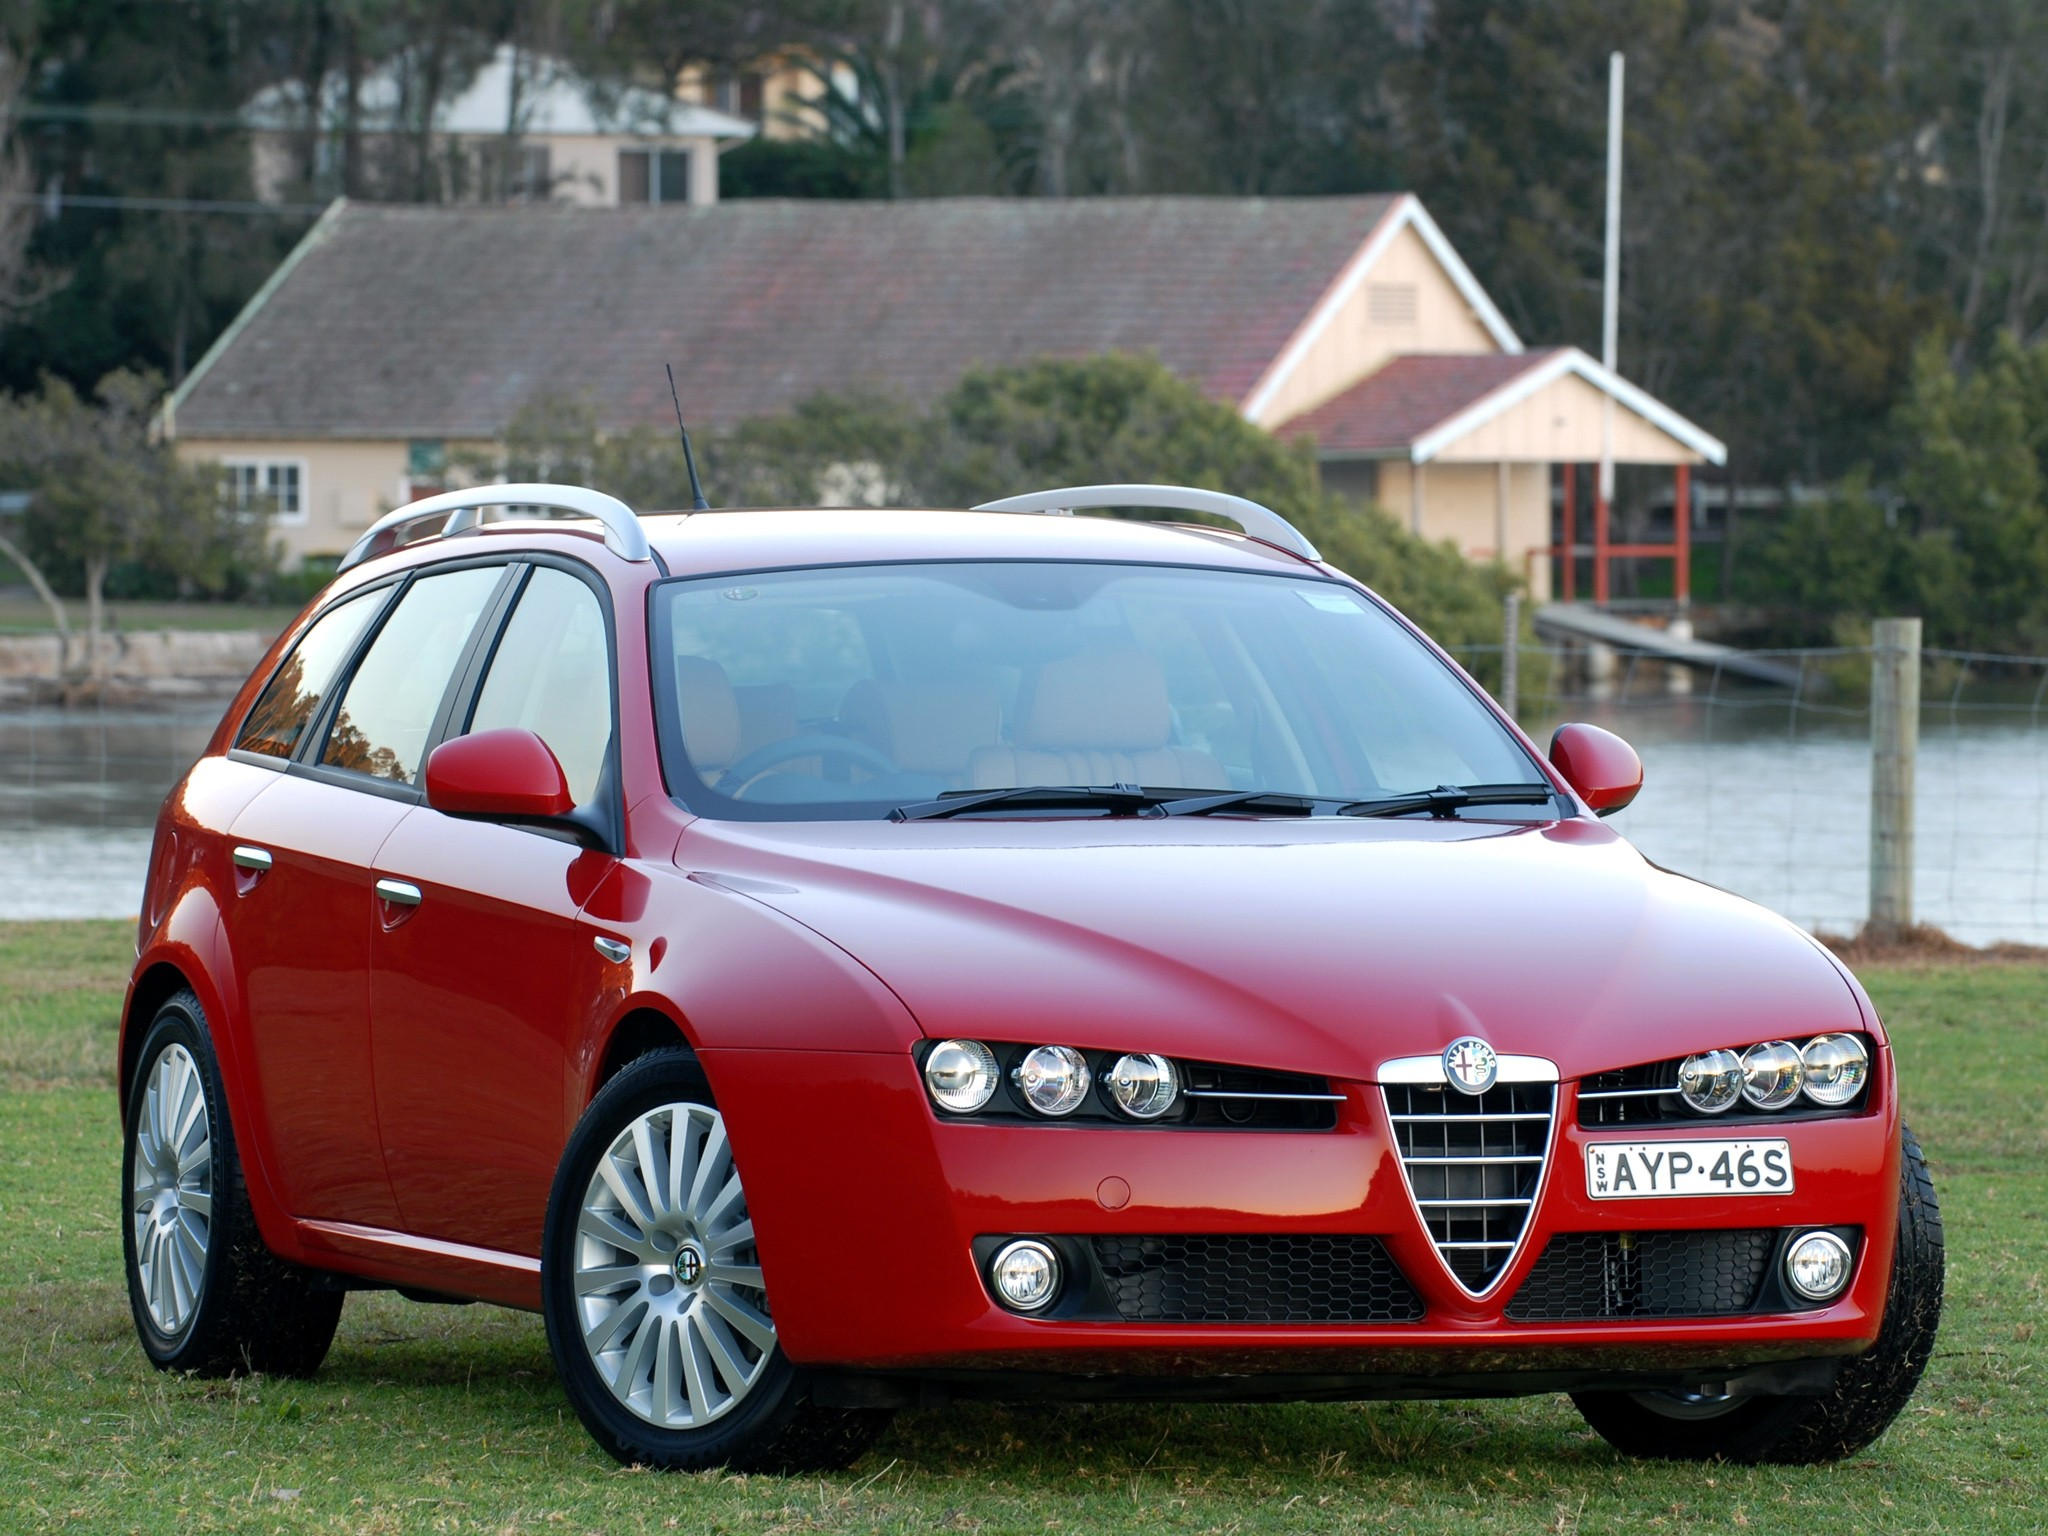 alfa romeo 159 sportwagon specs 2006 2007 2008 2009 2010 2011 autoevolution. Black Bedroom Furniture Sets. Home Design Ideas